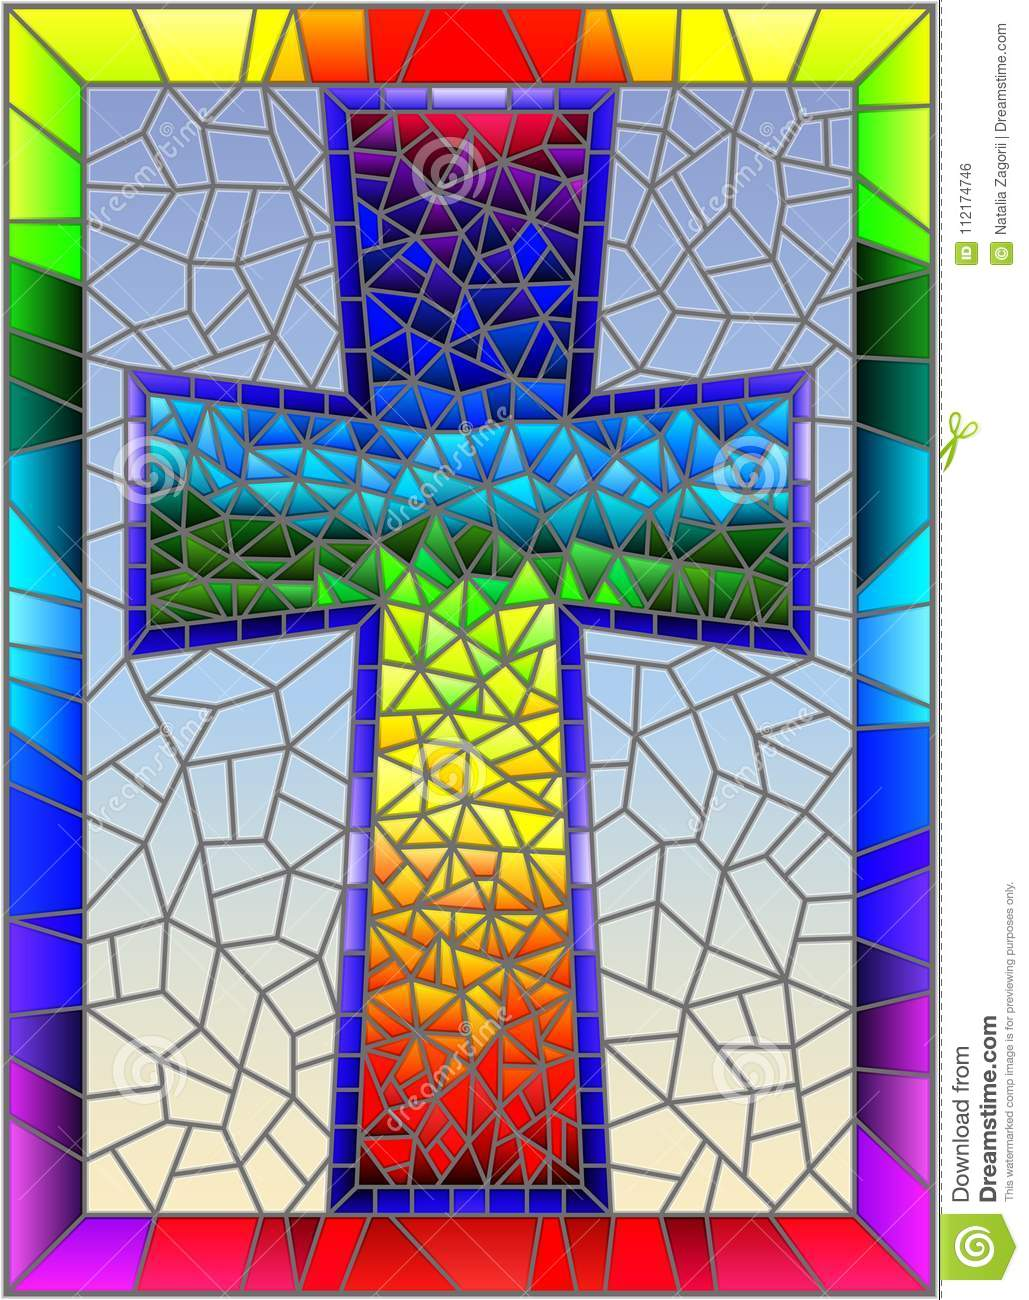 Stained glass illustration on religious themes, stained glass window in the shape of a rainbow Christian cross , on a blue backgro